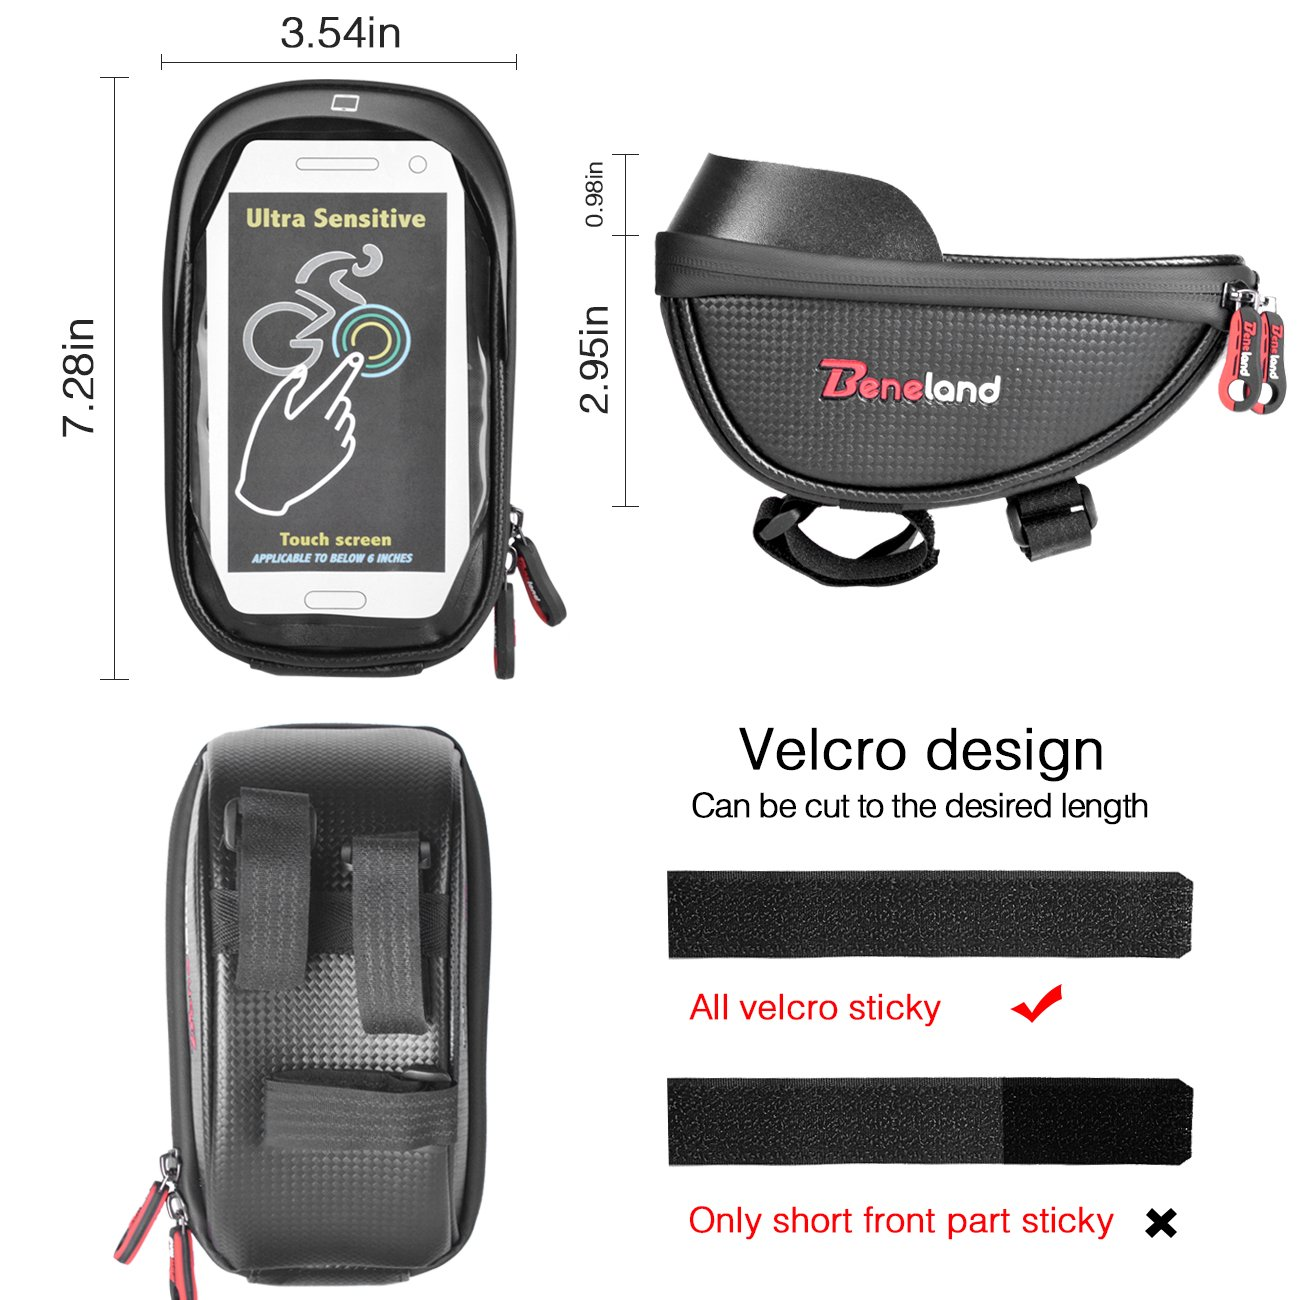 Bike Bag, Waterproof Touch Screen Bicycle Handbar Front Phone Frame Bag Holder For iPhone 8 7 Plus 6s 6 plus 5s 5 / Samsung Galaxy s7 s6 note 7 Cellphone Below 6.0 Inch With Sun Visor by Beneland (Image #3)